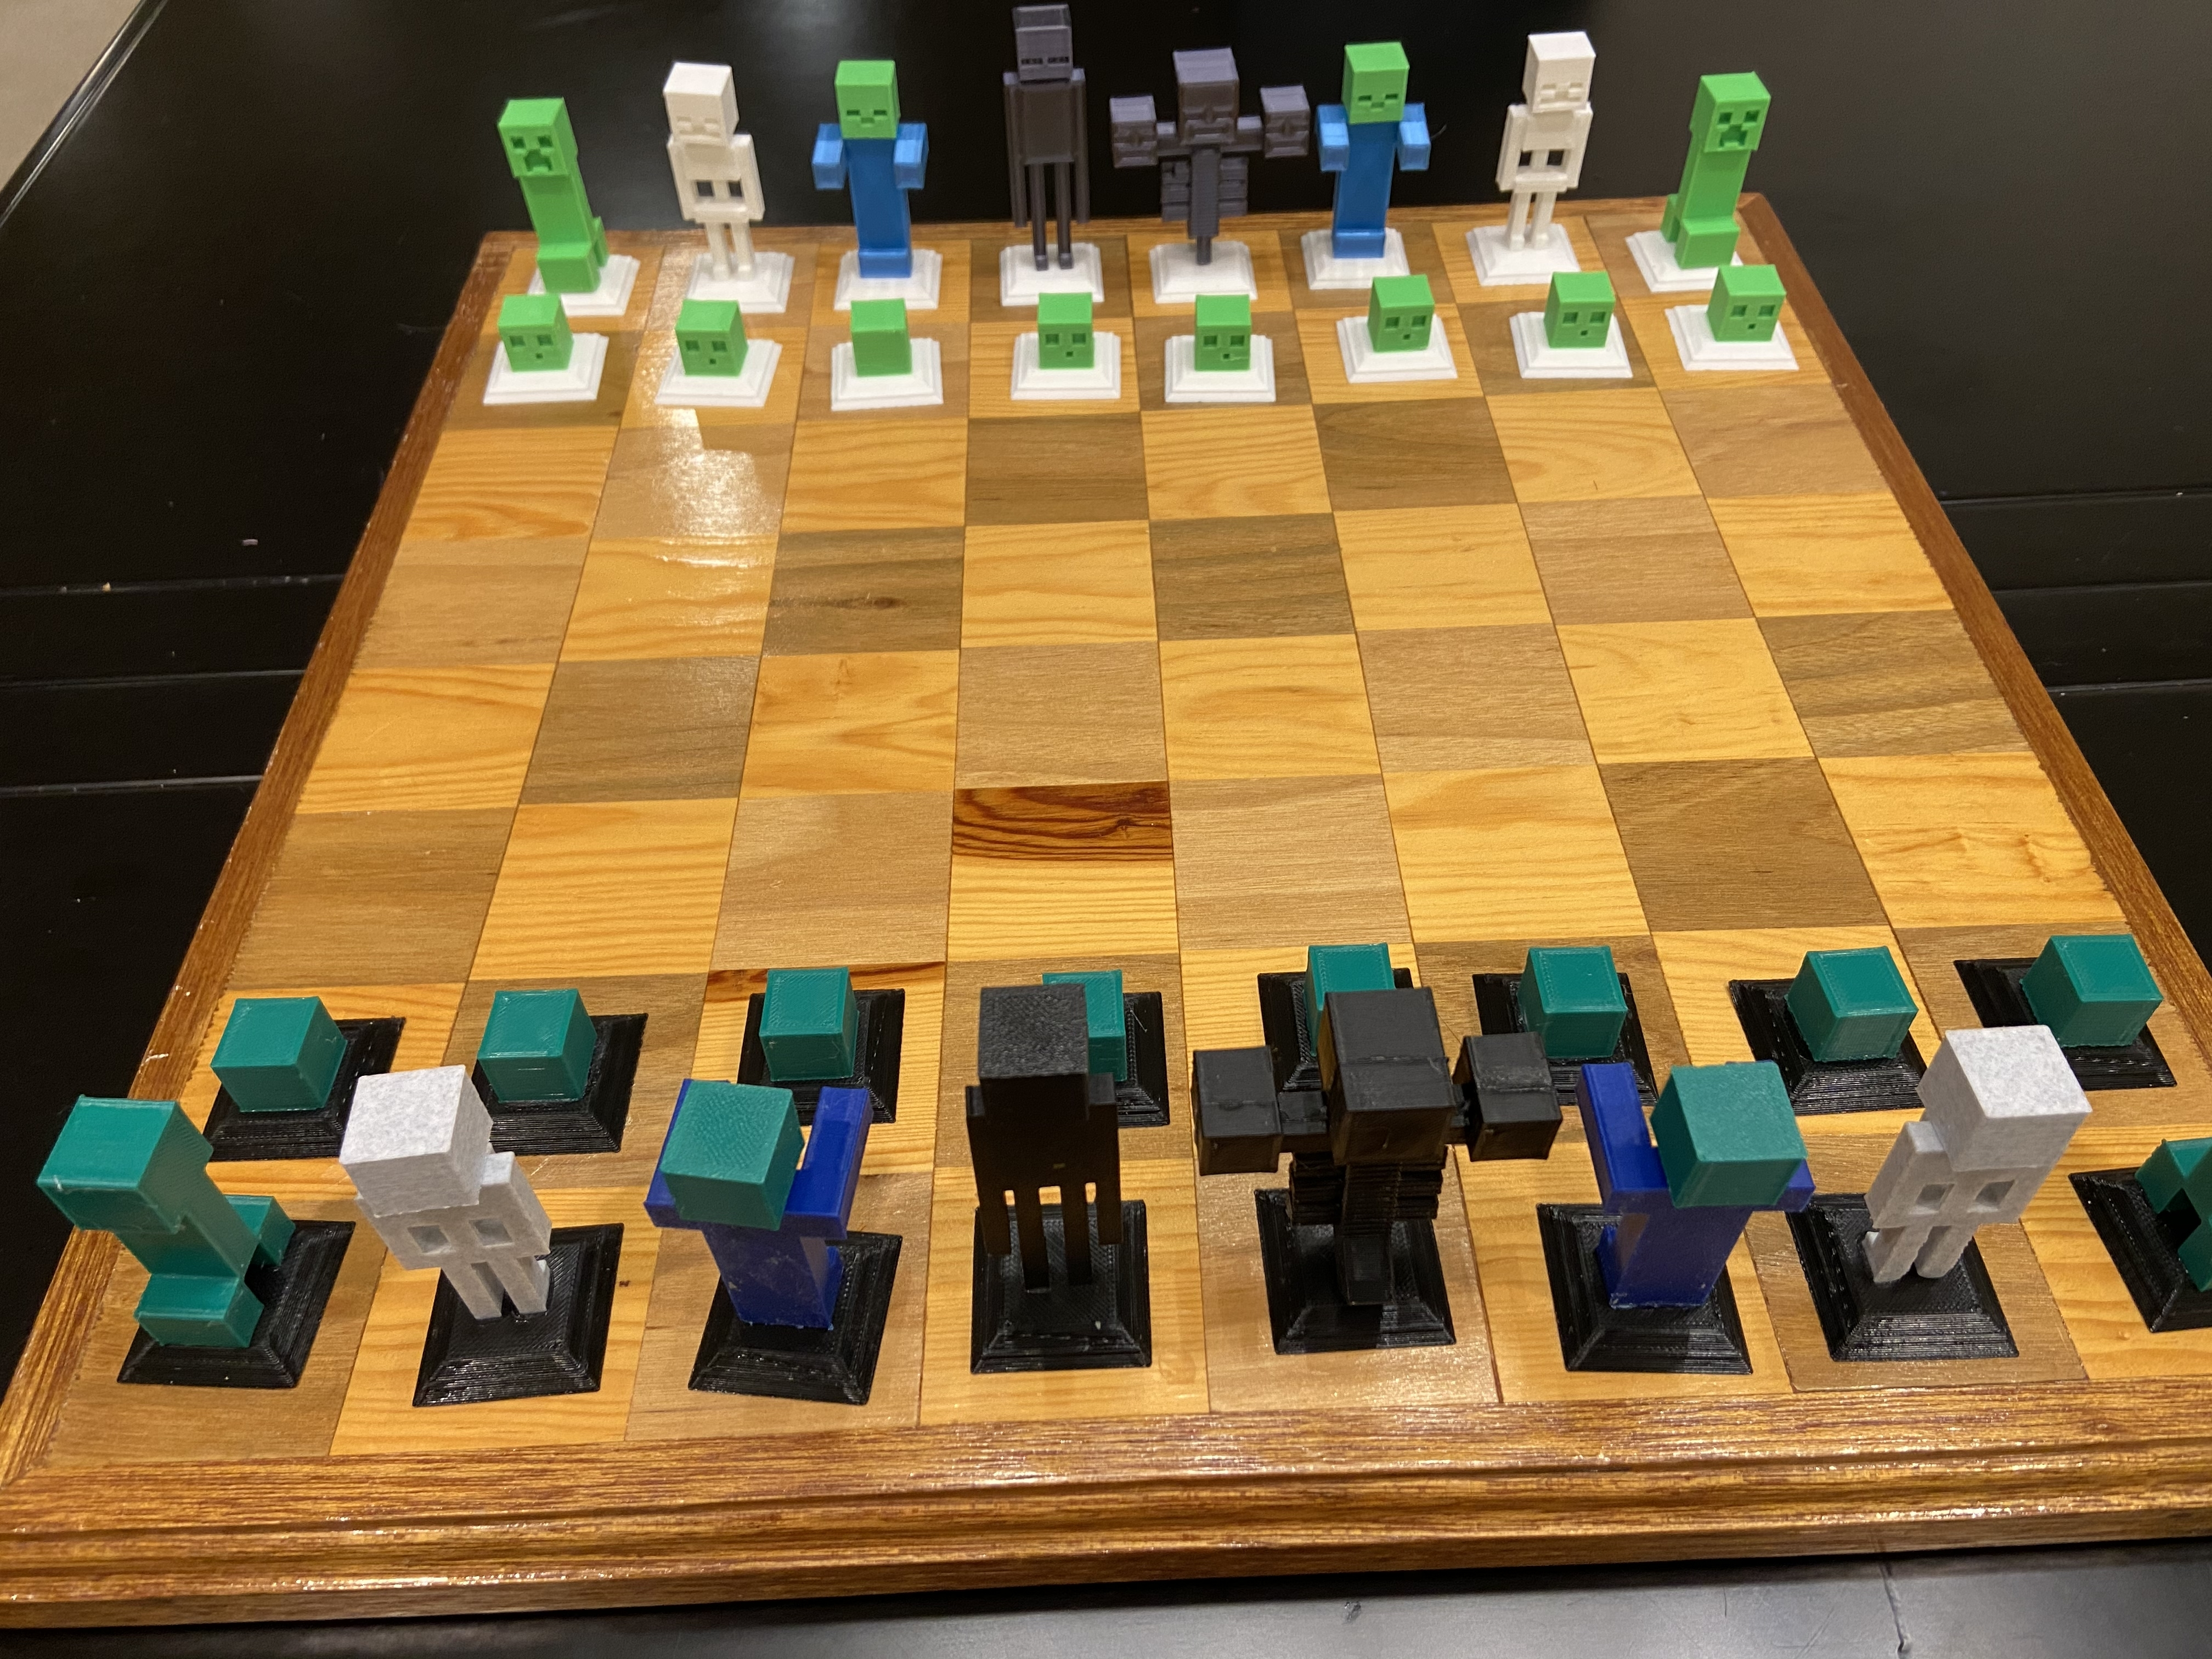 2020-01-20_00.58.09.jpg Download free STL file Complete Minecraft Chess Set • Model to 3D print, Hardcore3D